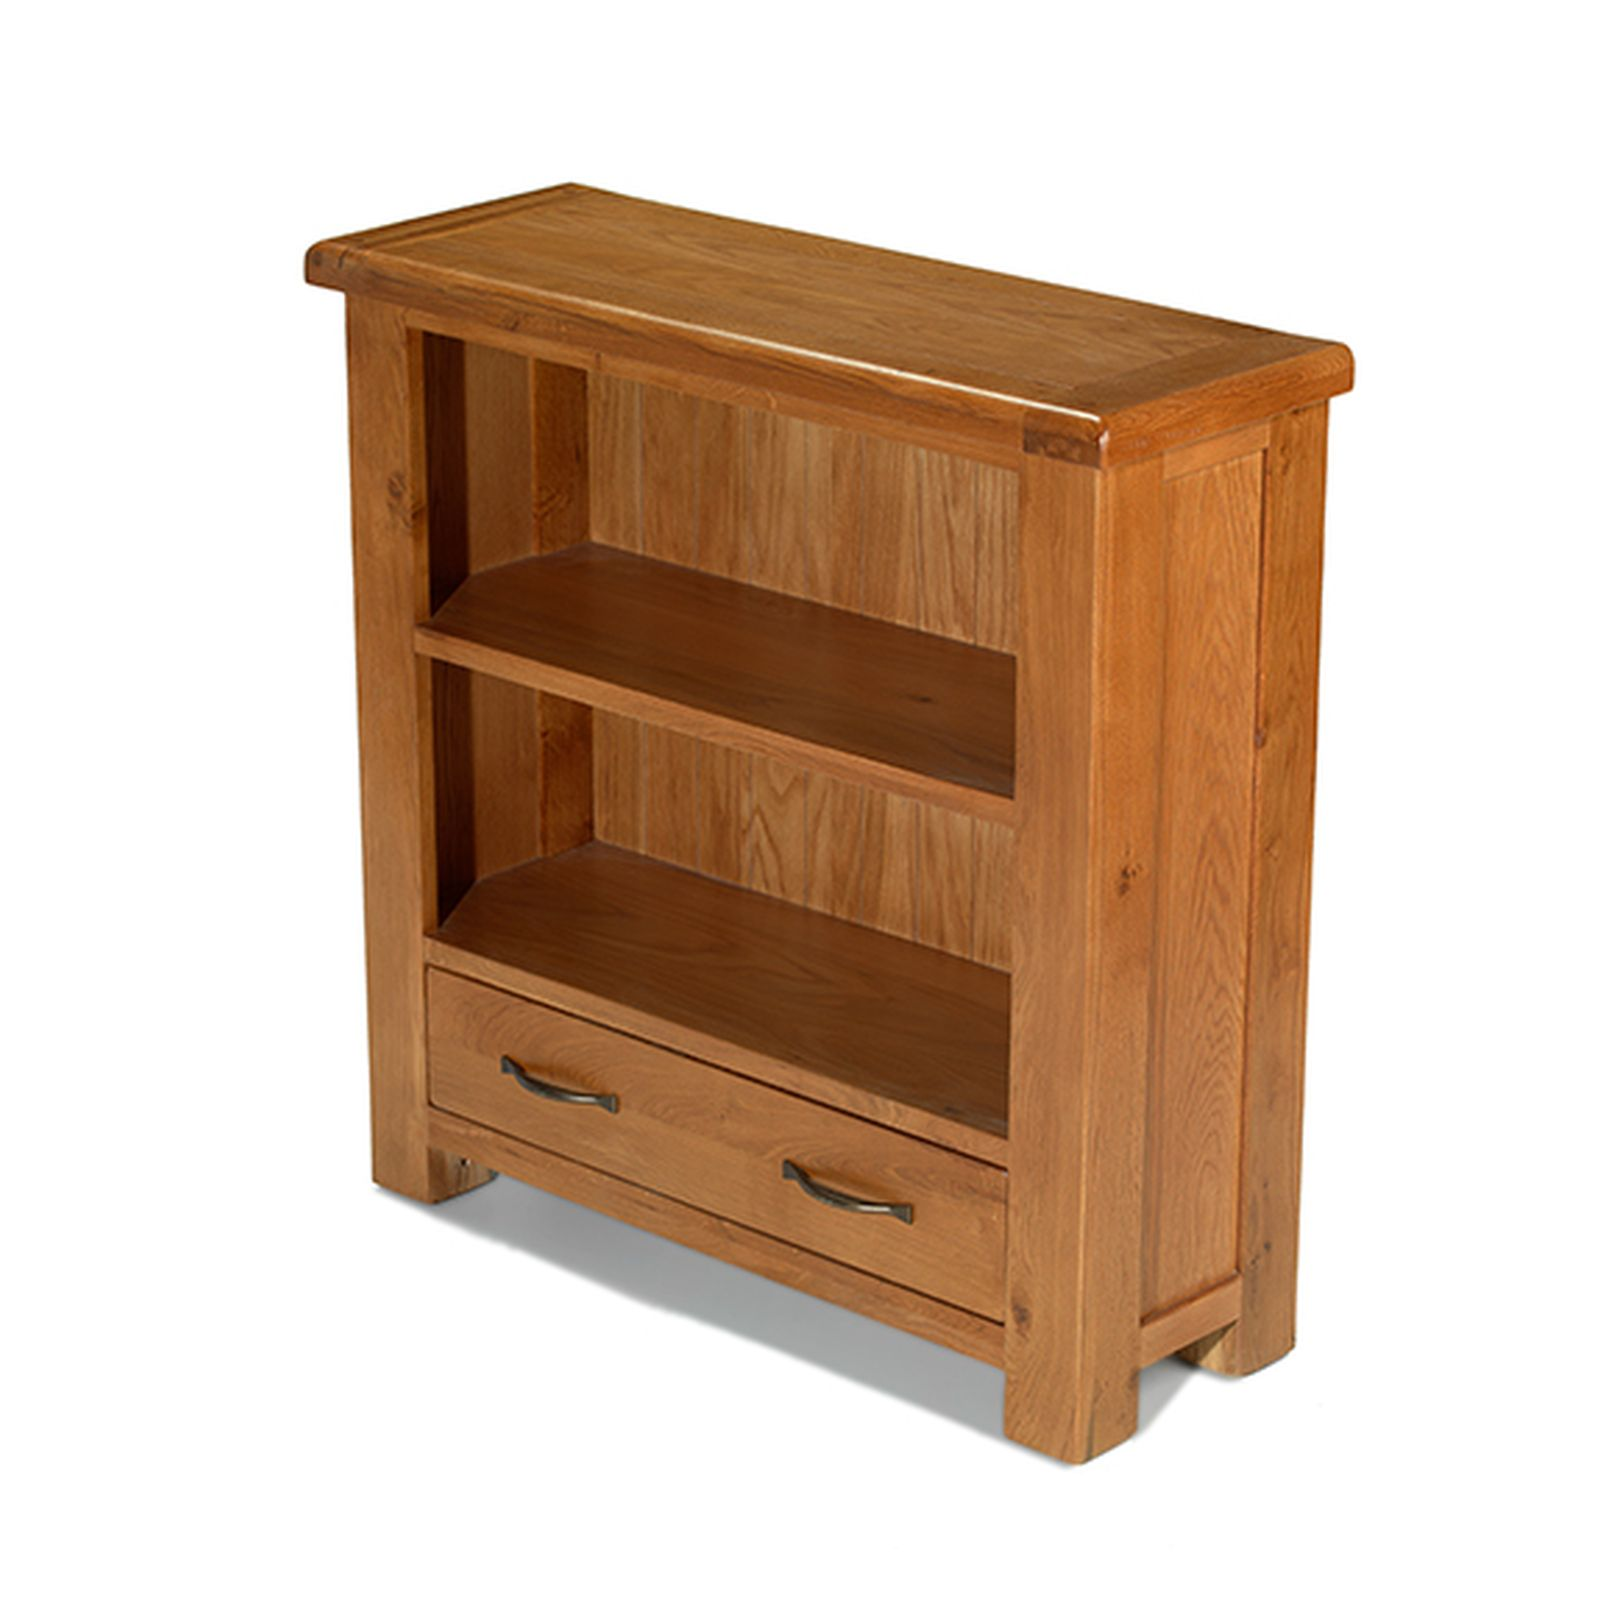 Melrose solid oak furniture small low bookcase with drawer for Small furniture